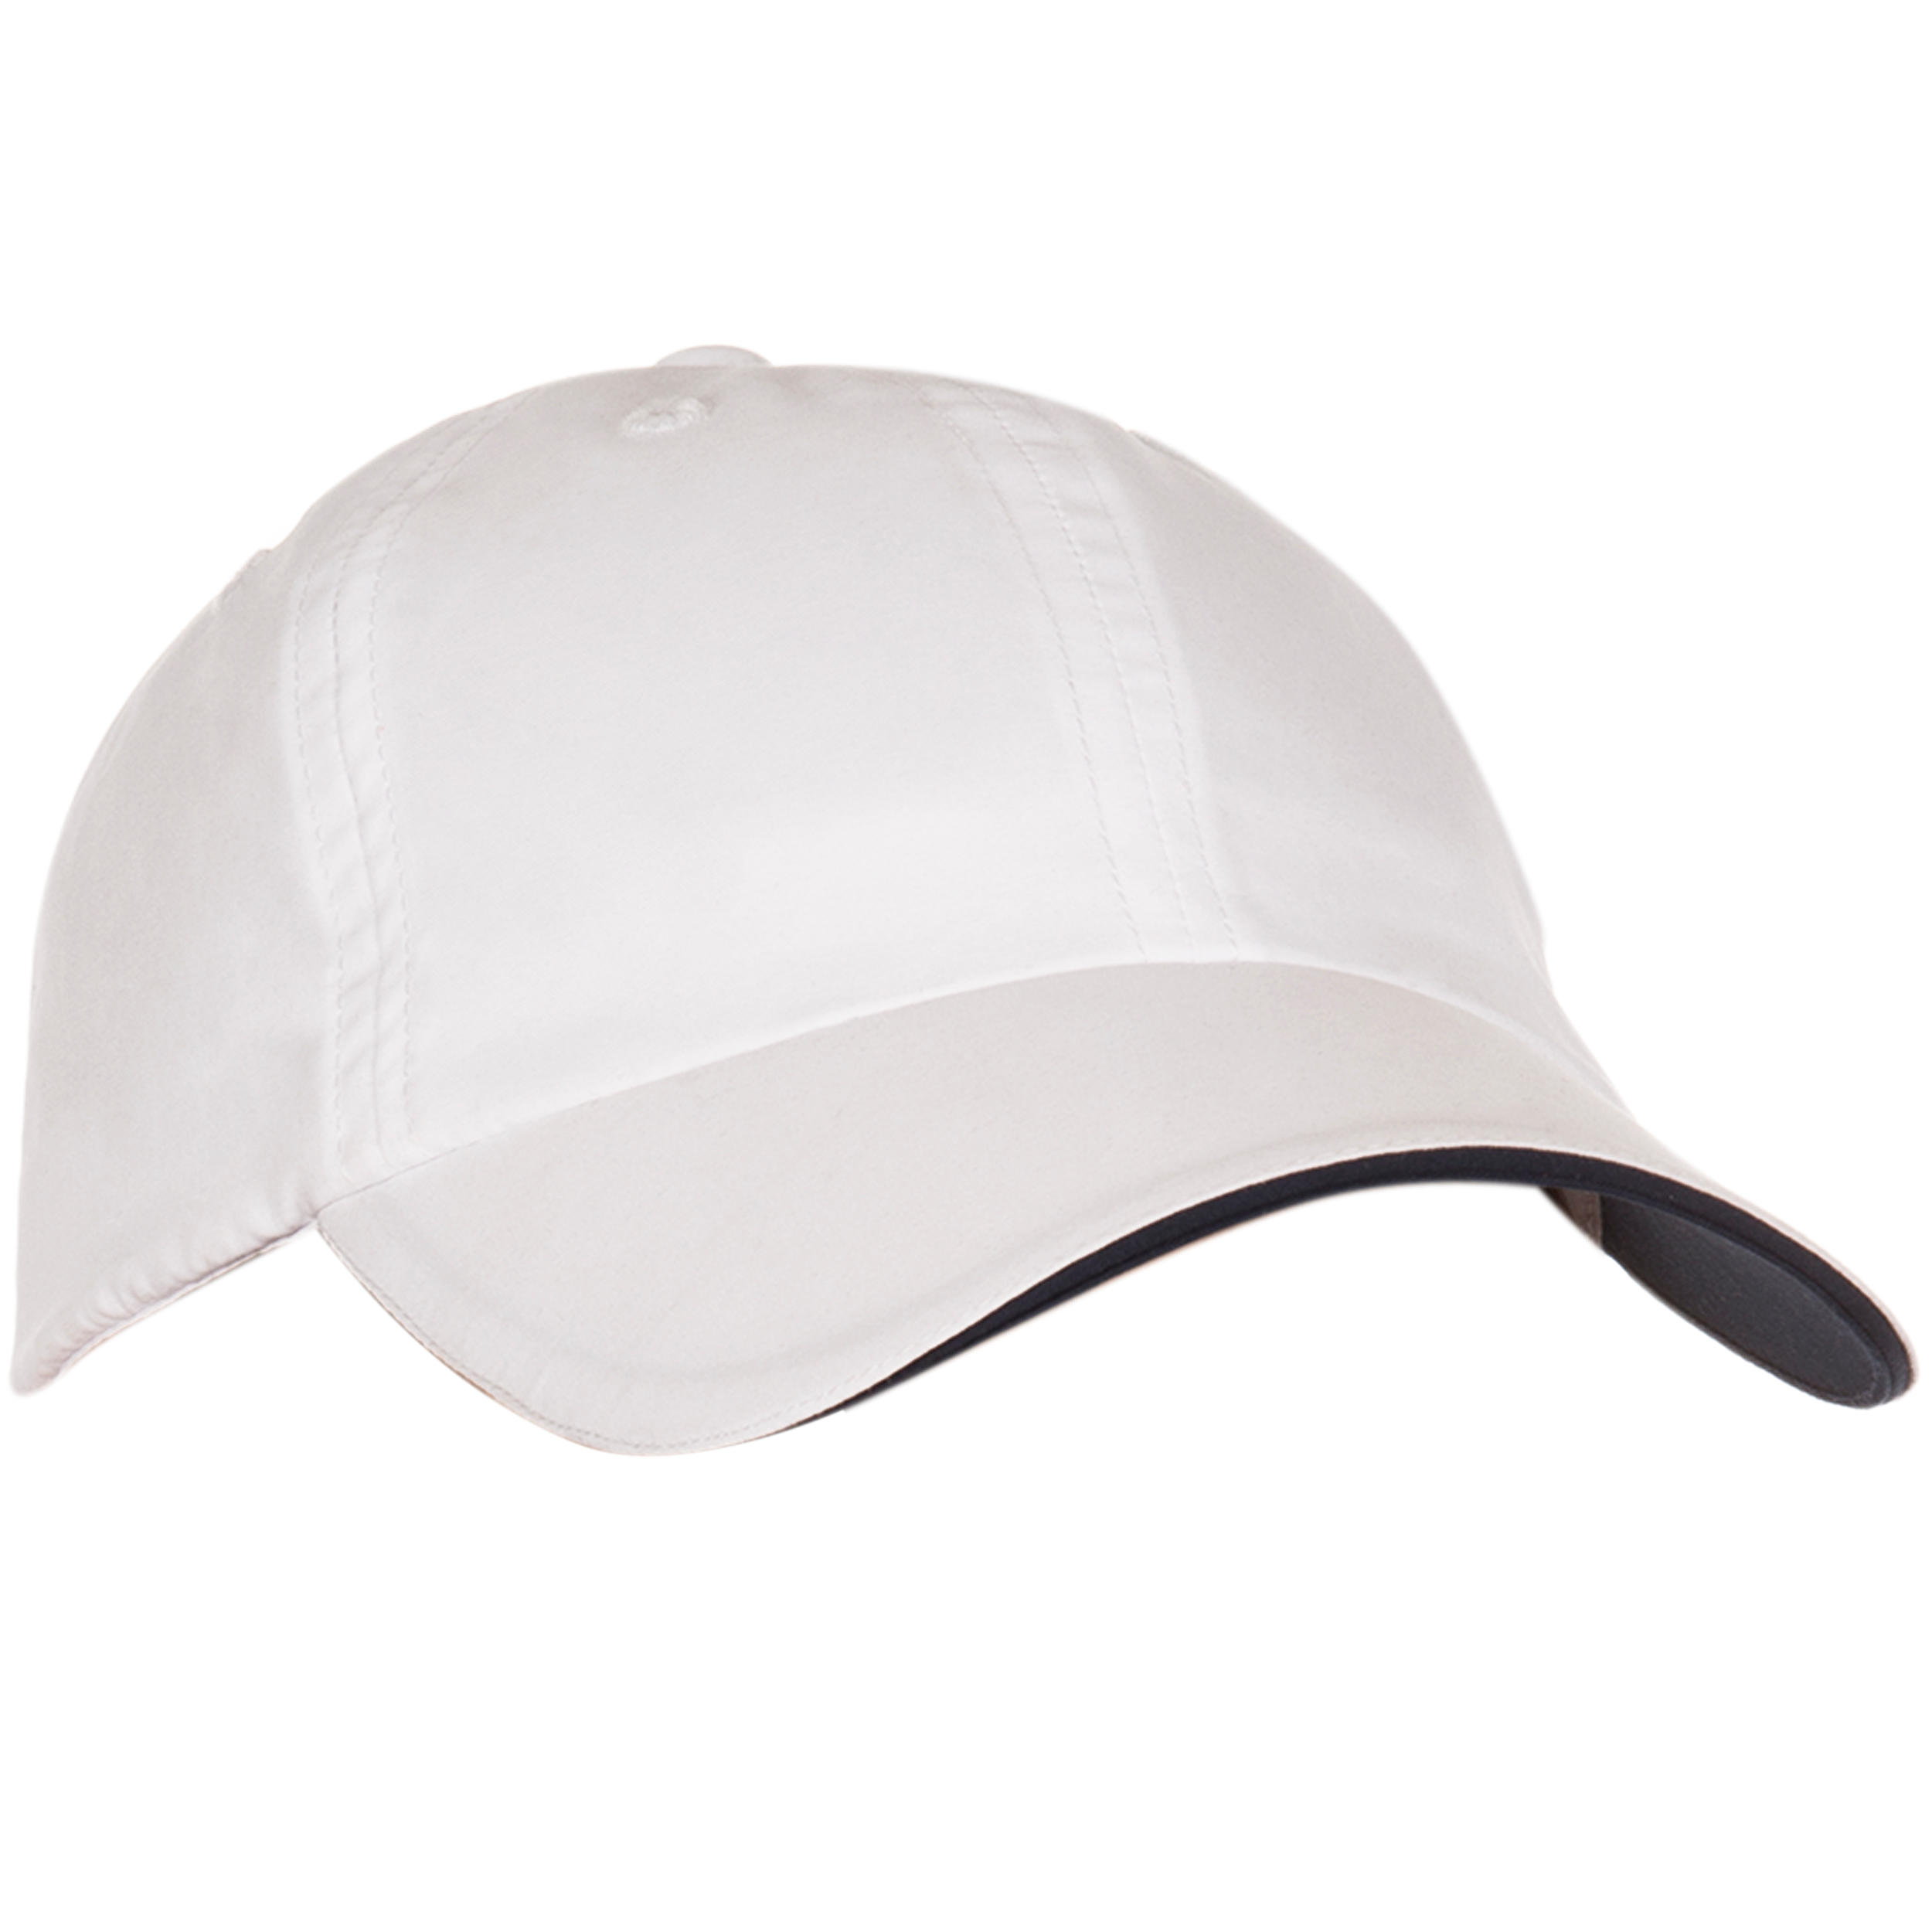 GORRA JUNIOR BLANCO